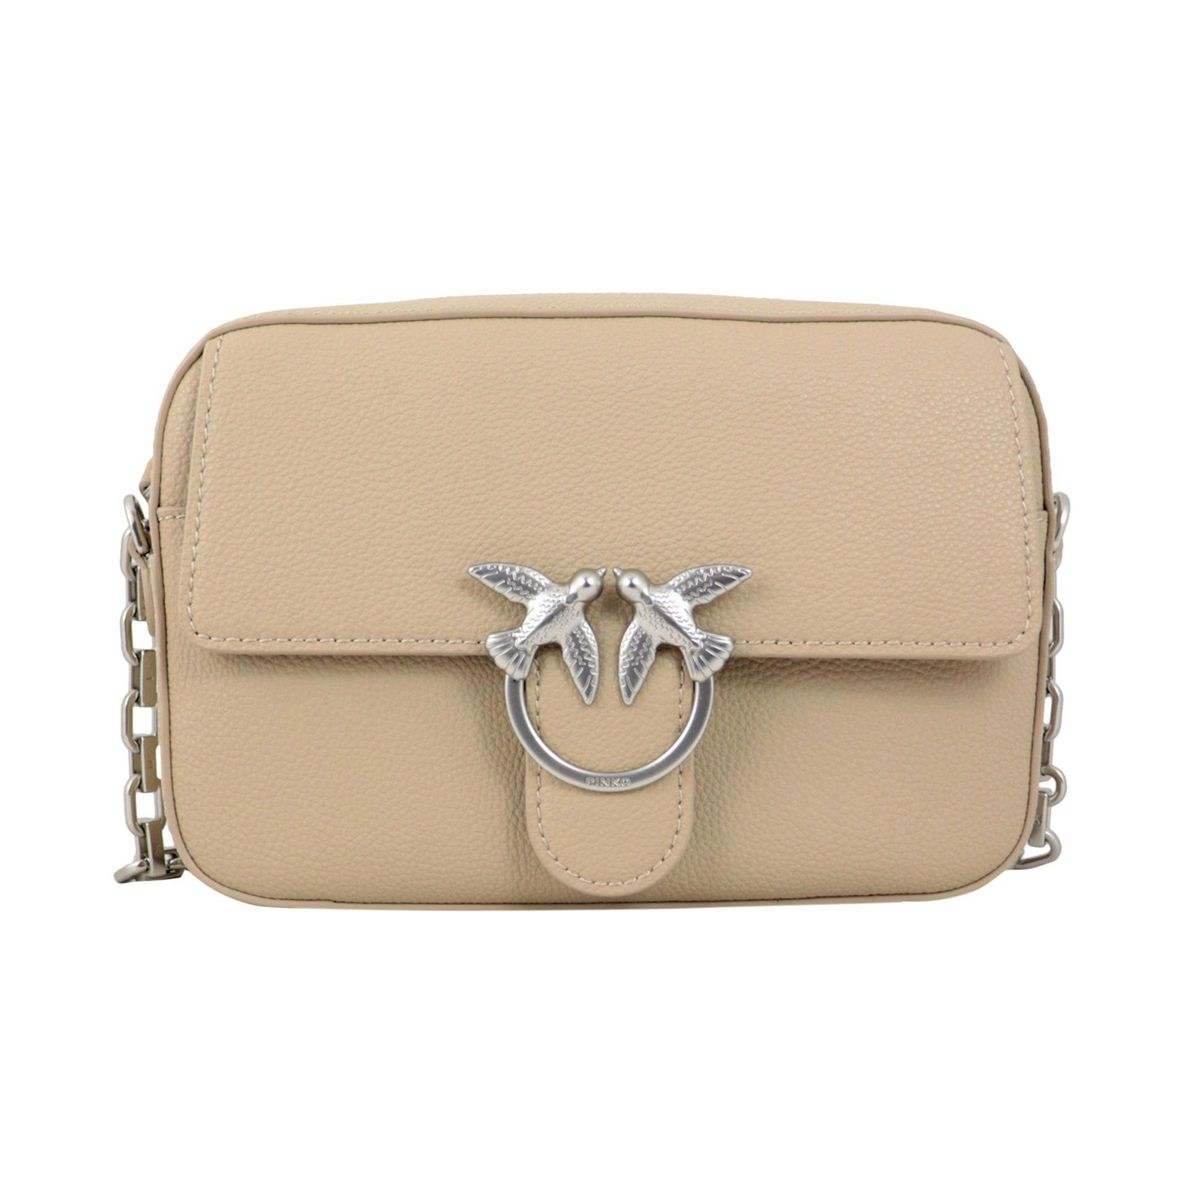 Love Square Simply bag in nappa leather Beige Pinko